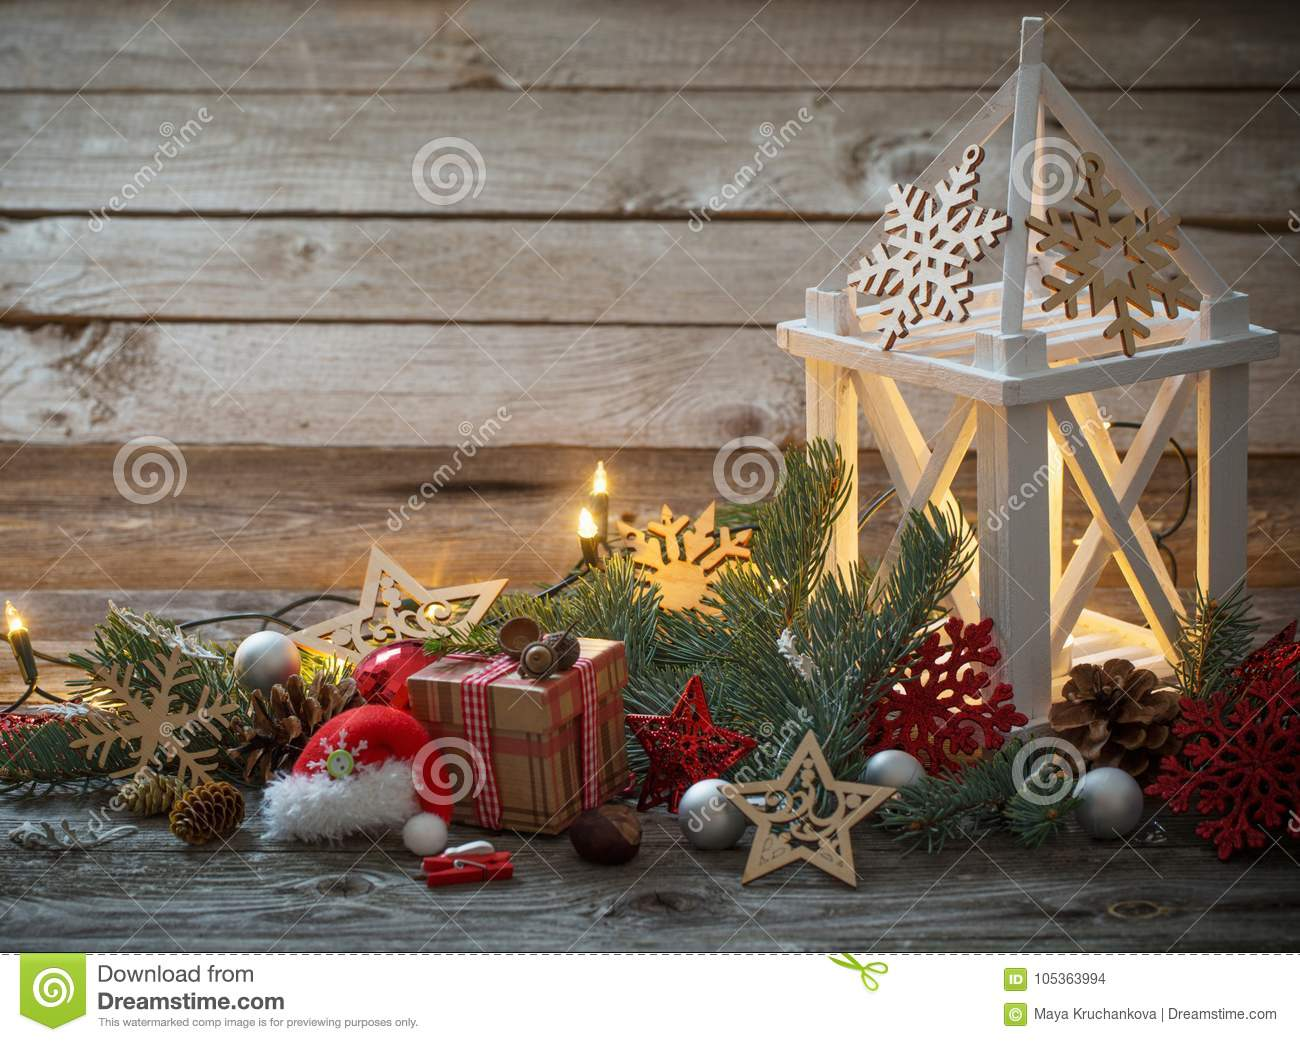 download christmas decoration with white lantern stock photo image of light greeting 105363994 - How To Decorate A Lantern For Christmas